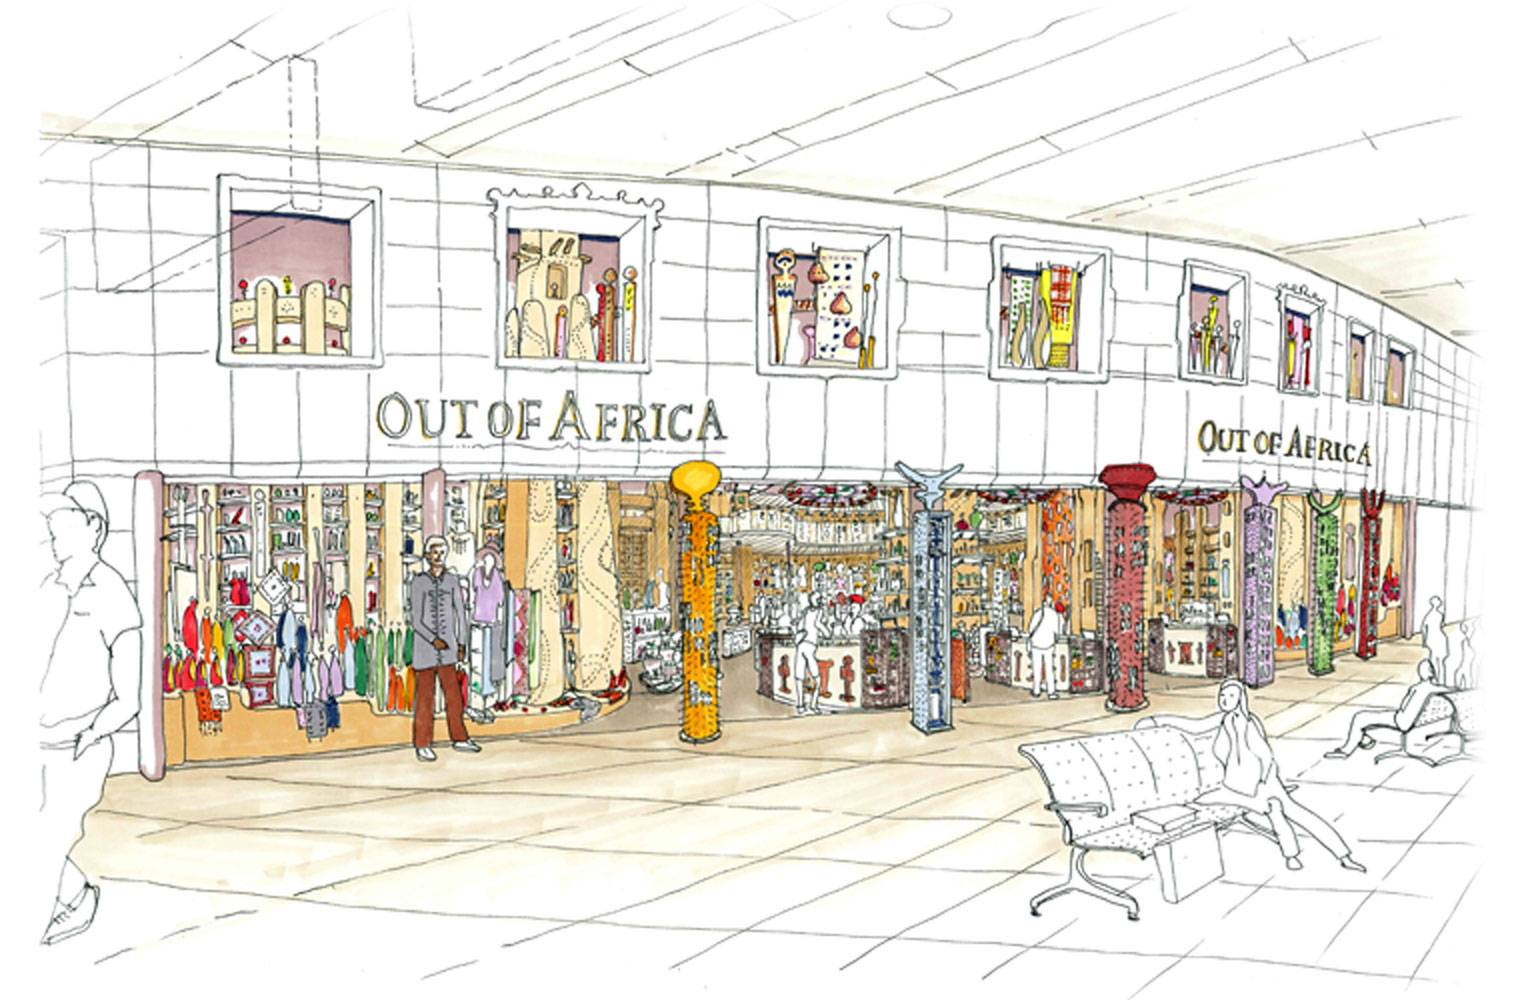 Out Of Africa - OR Tambo FInal Concept, Mall View